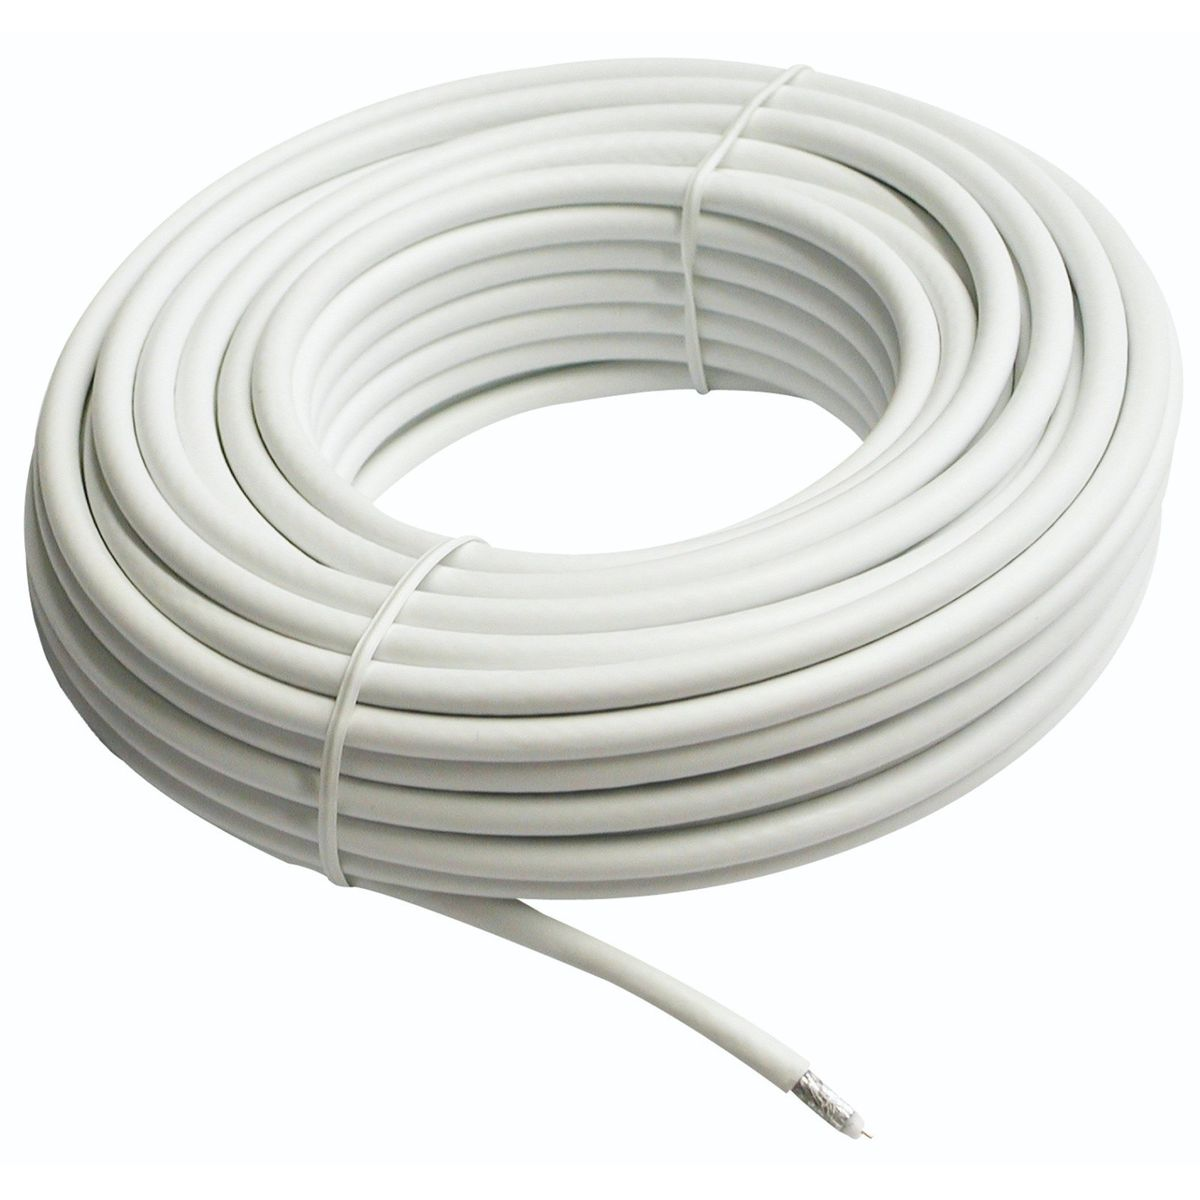 ellies coaxial tv cable 20m buy online in south africa. Black Bedroom Furniture Sets. Home Design Ideas